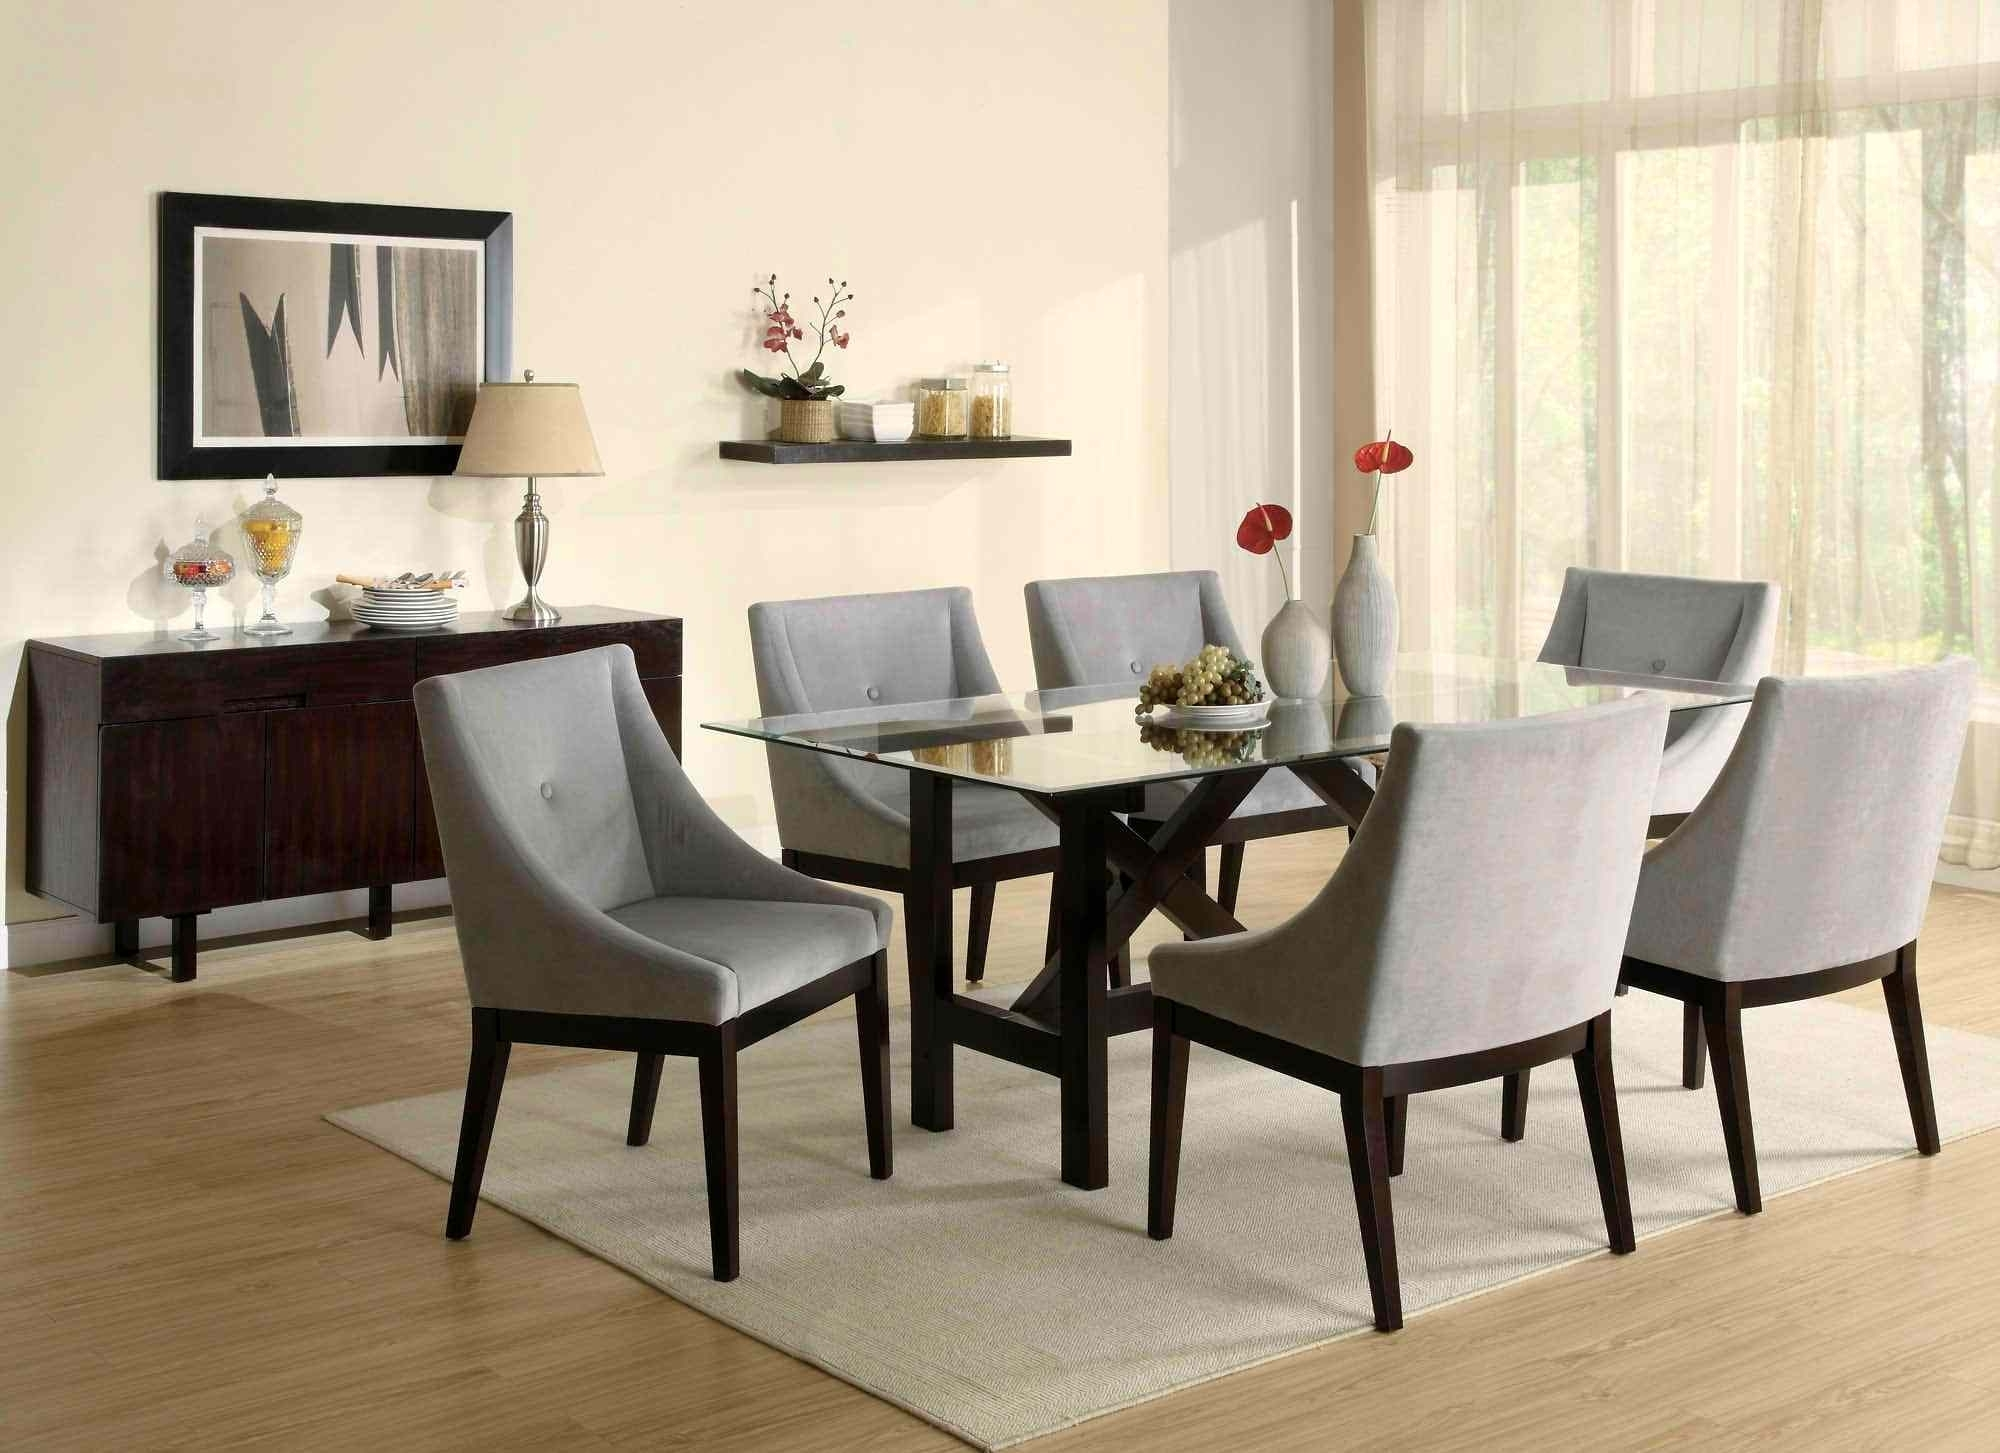 Overwhelming Table Contemporary Set Furniture Design Contemporary Within Latest Contemporary Dining Tables Sets (View 7 of 25)